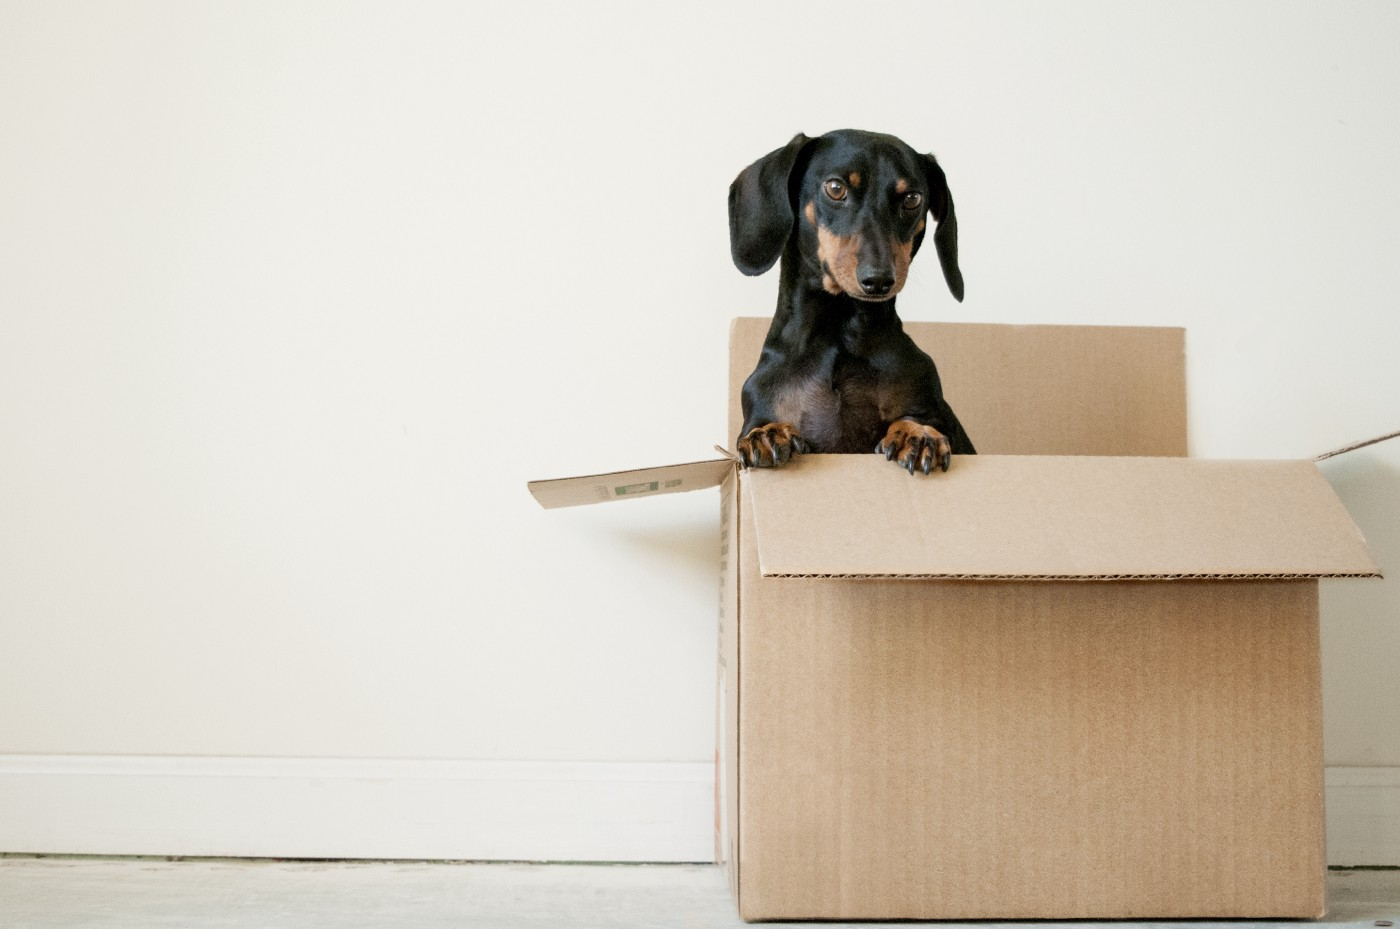 A small dachshund puppy peers out from the confines of a large cardboard box.